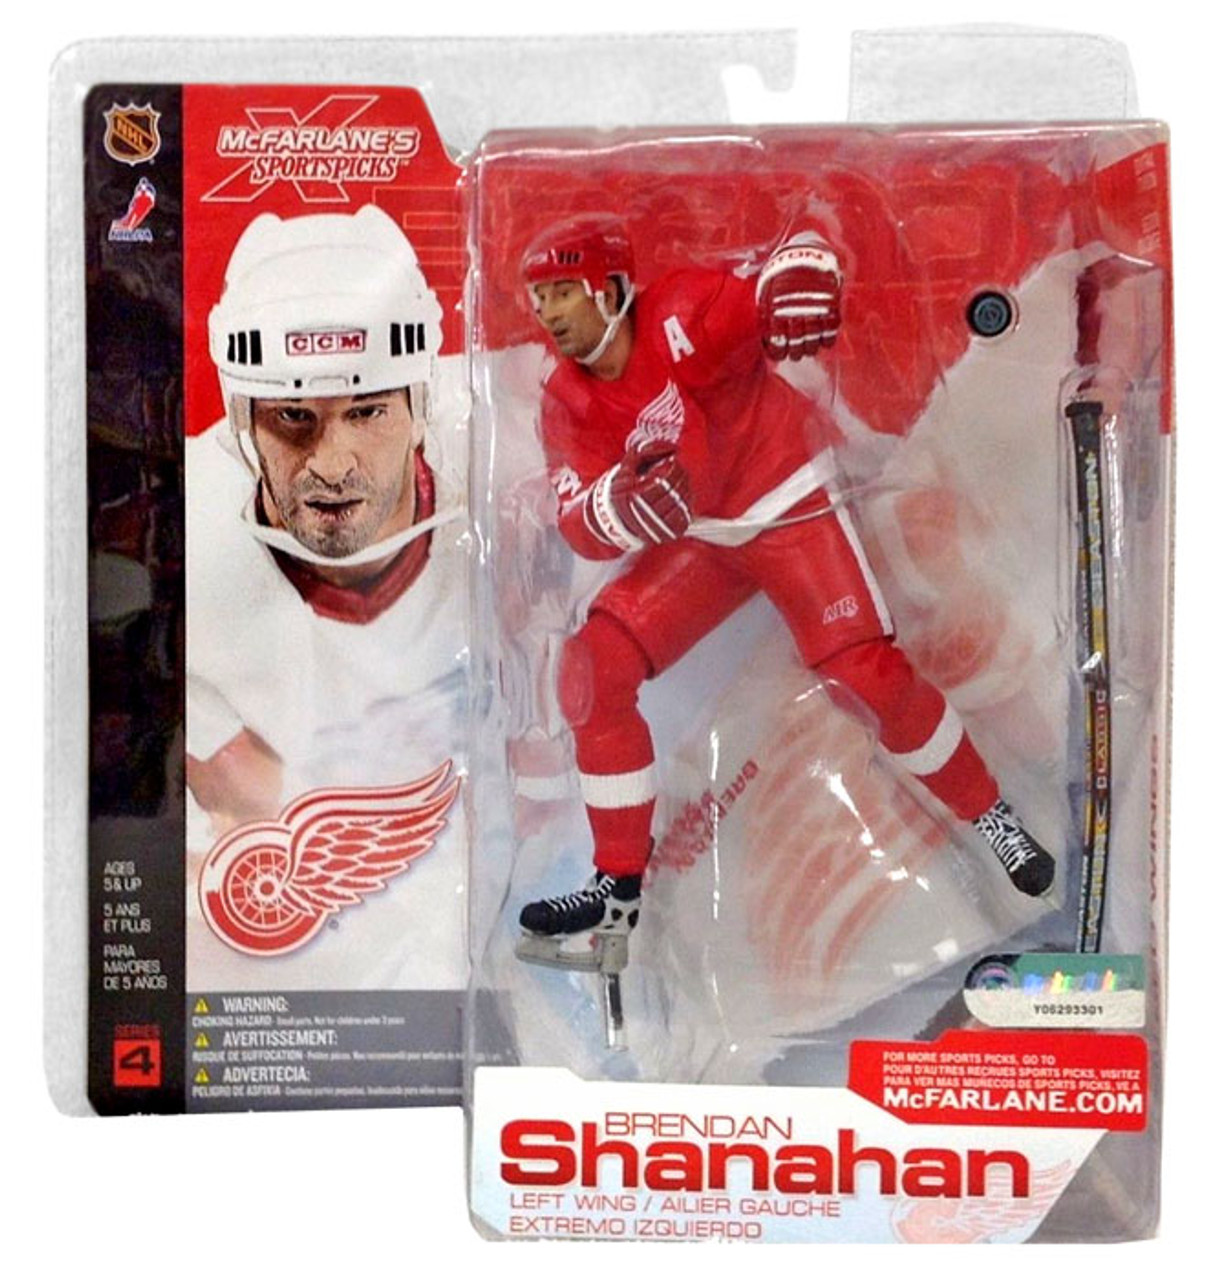 McFarlane Toys NHL Detroit Red Wings Sports Picks Series 4 Brendan Shanahan Action Figure [Red Jersey Variant]